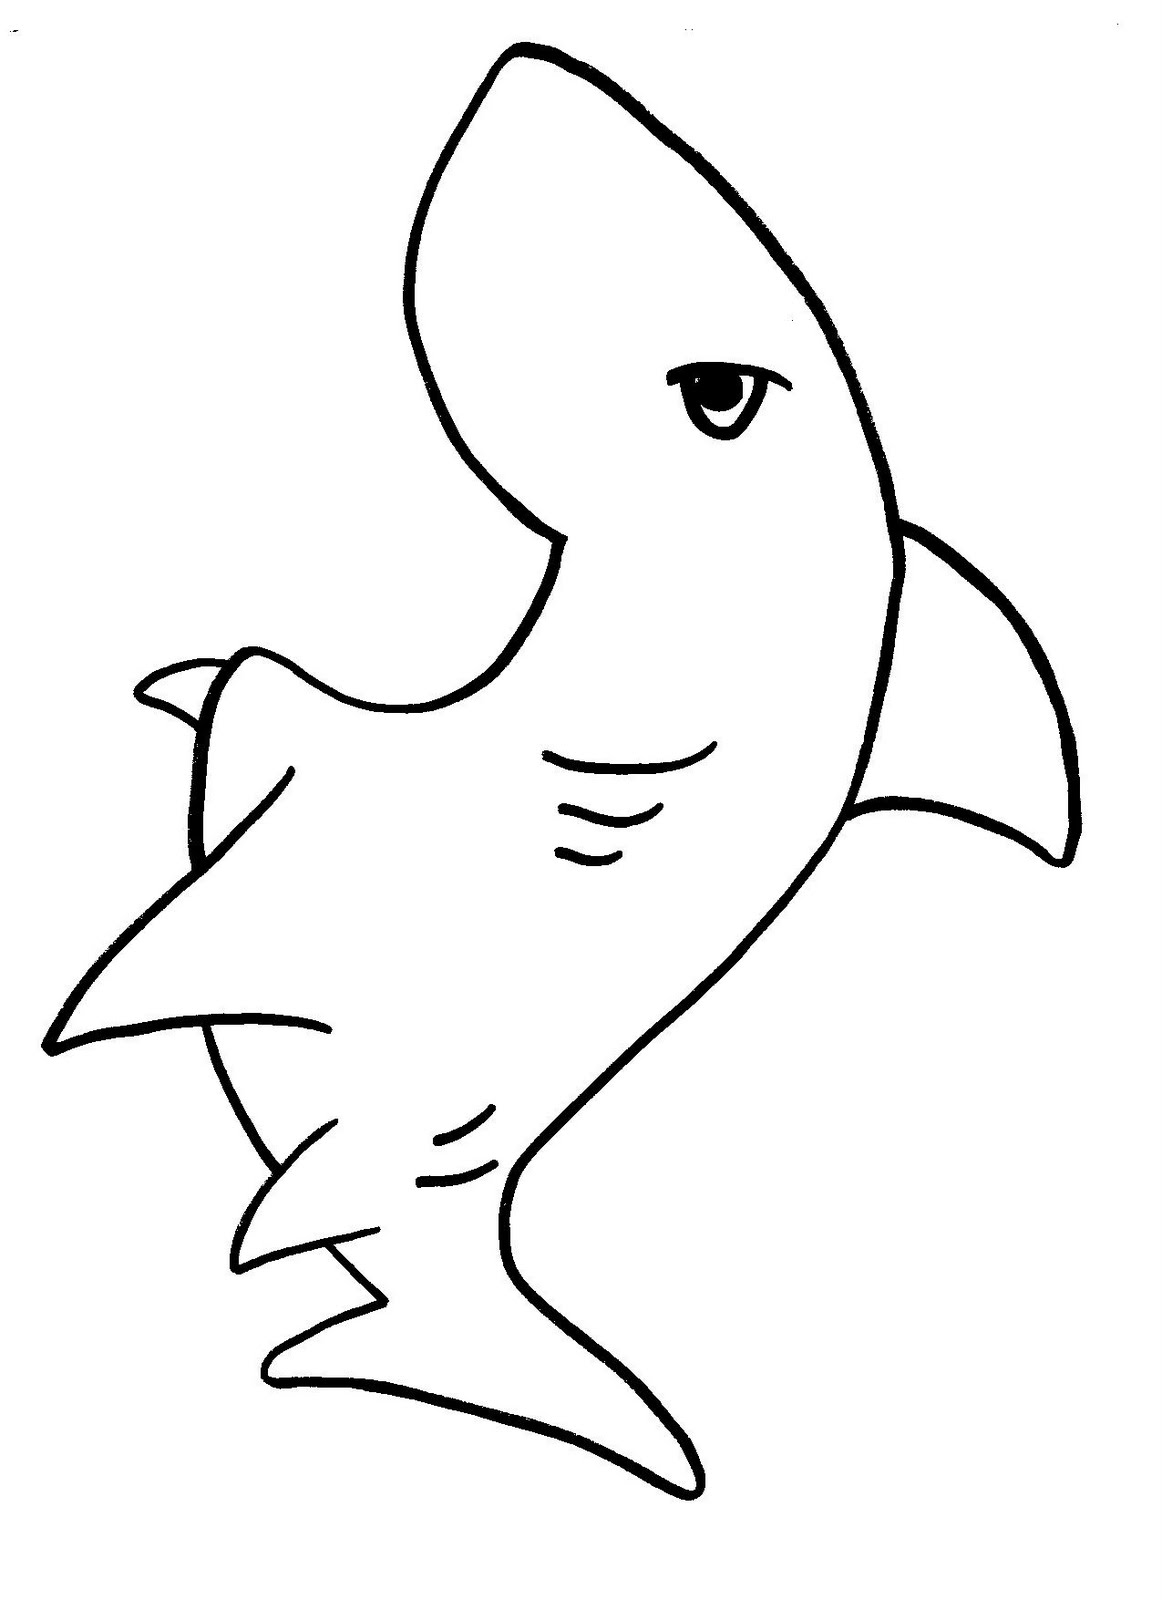 shark picture to color 33 free shark coloring pages printable color shark picture to